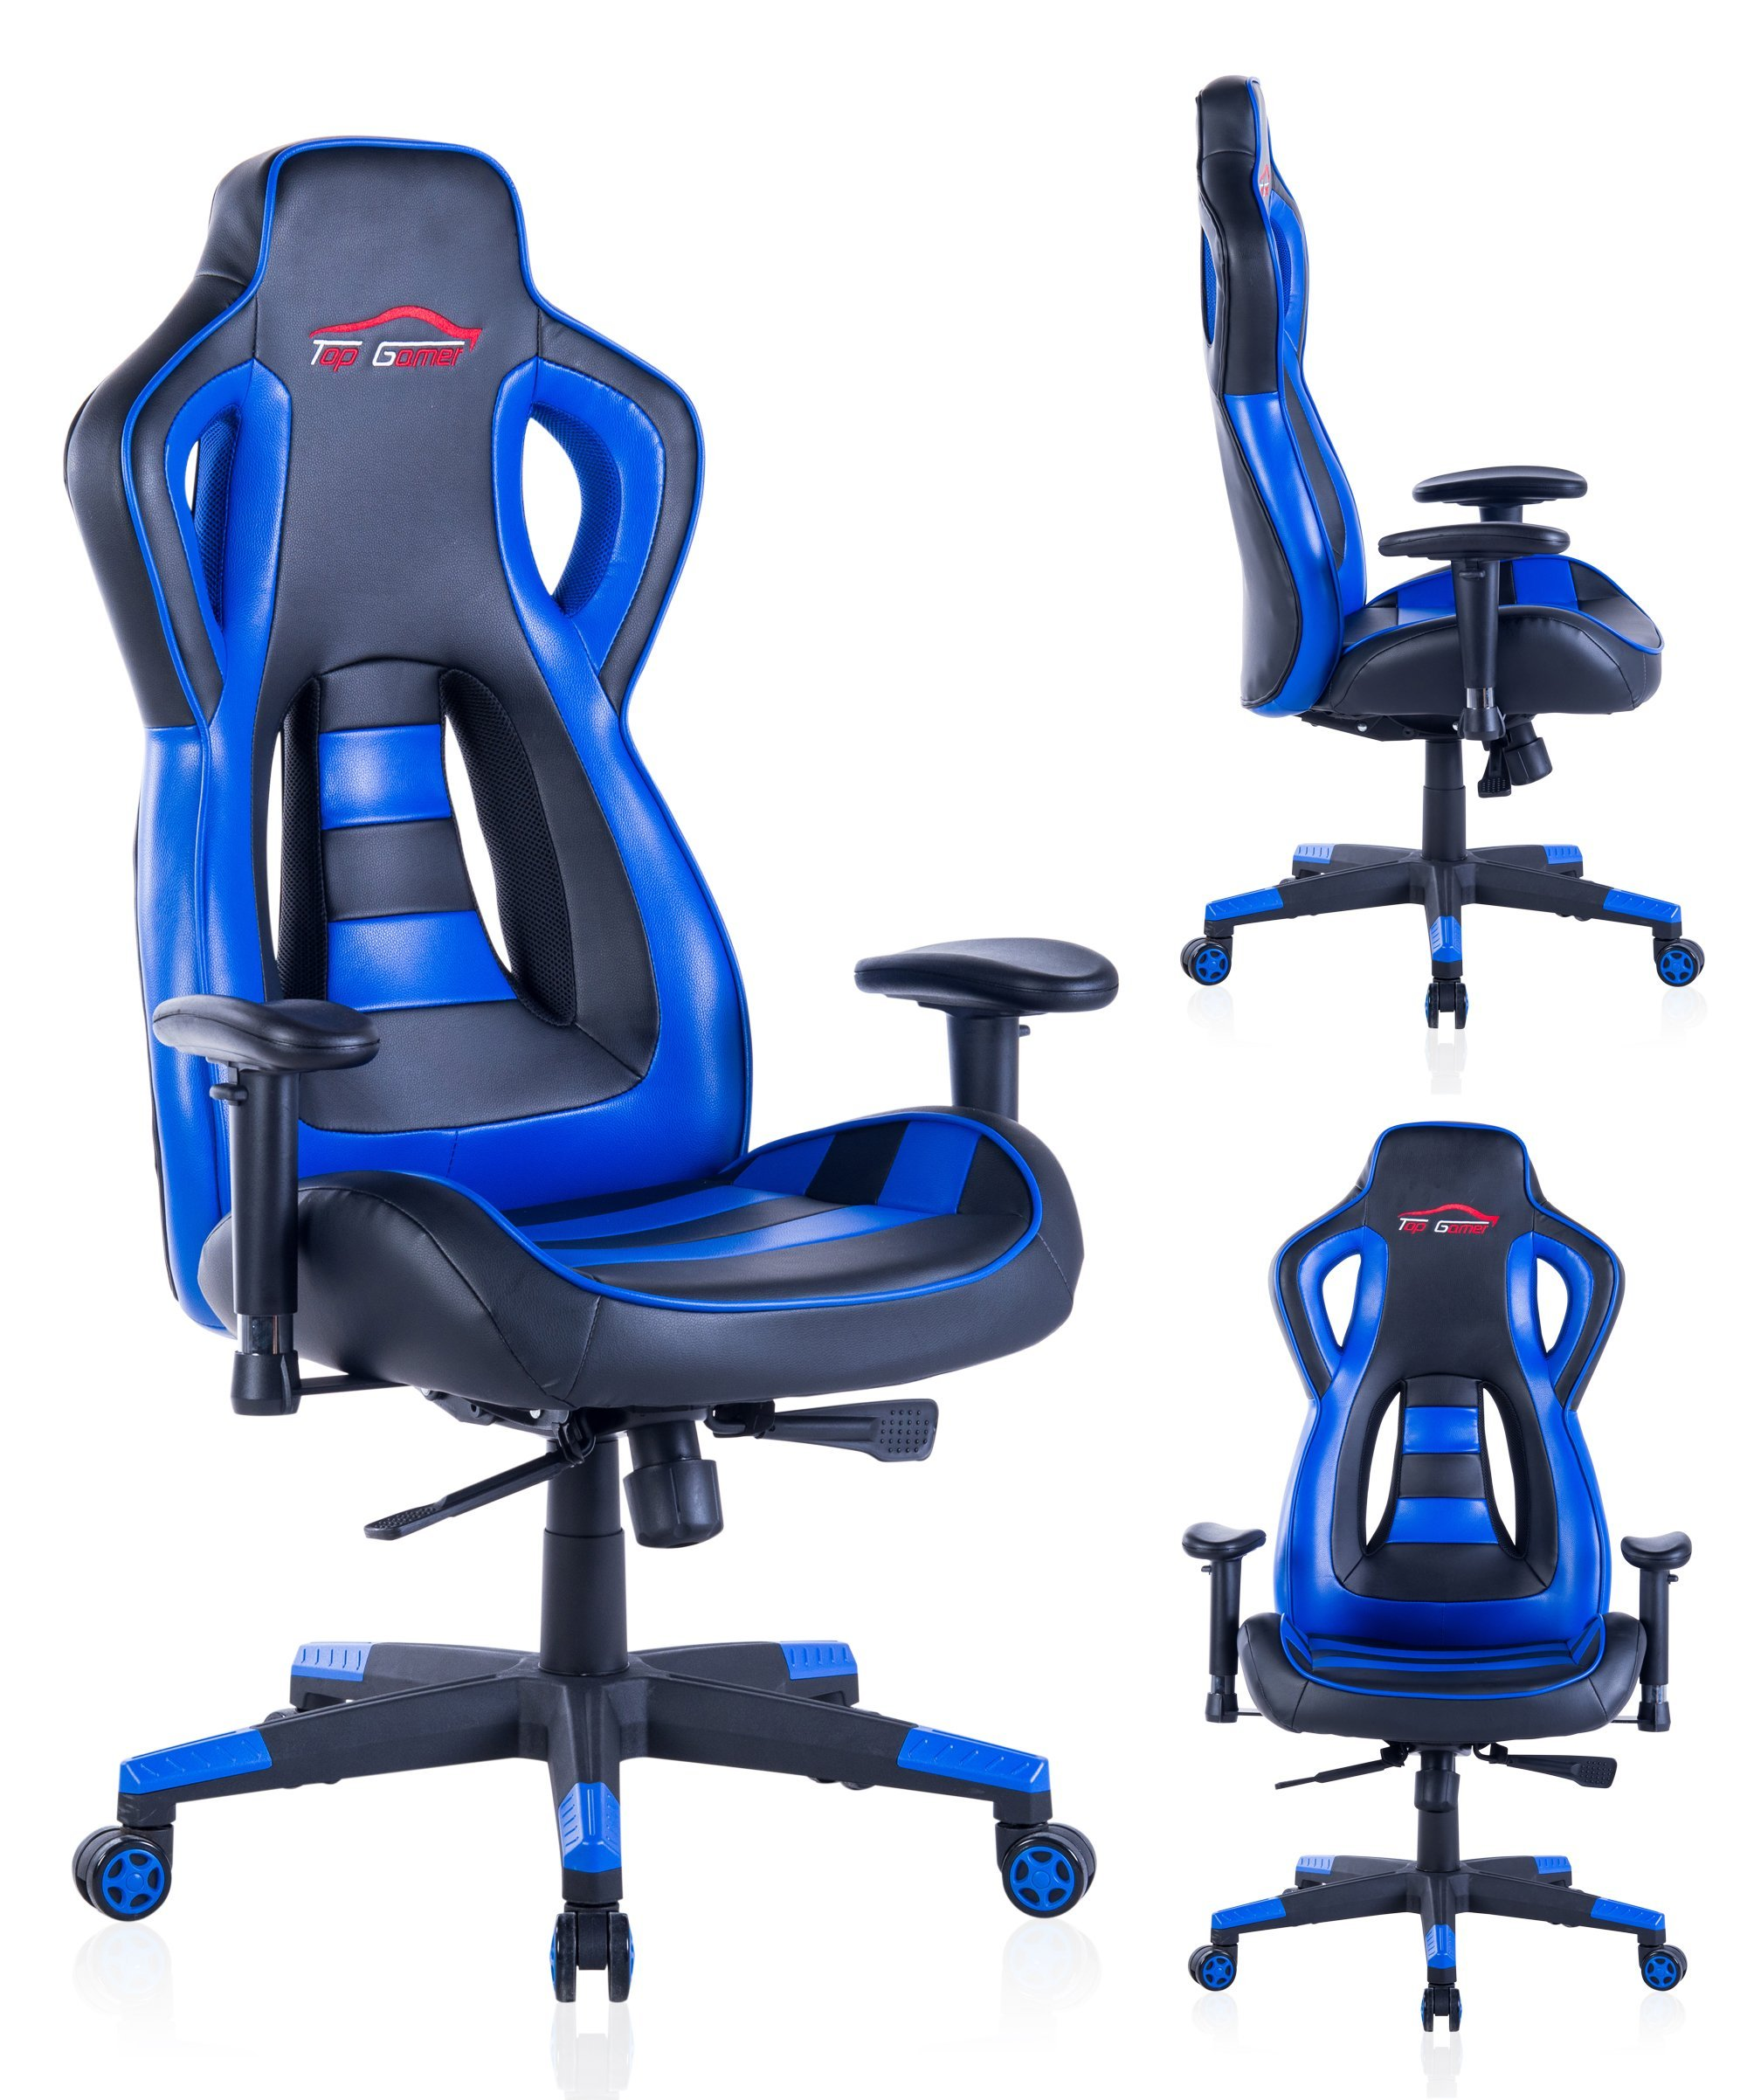 Top Gamer Gaming Chair PC Computer Game Chairs for Video Game (Blue-02)